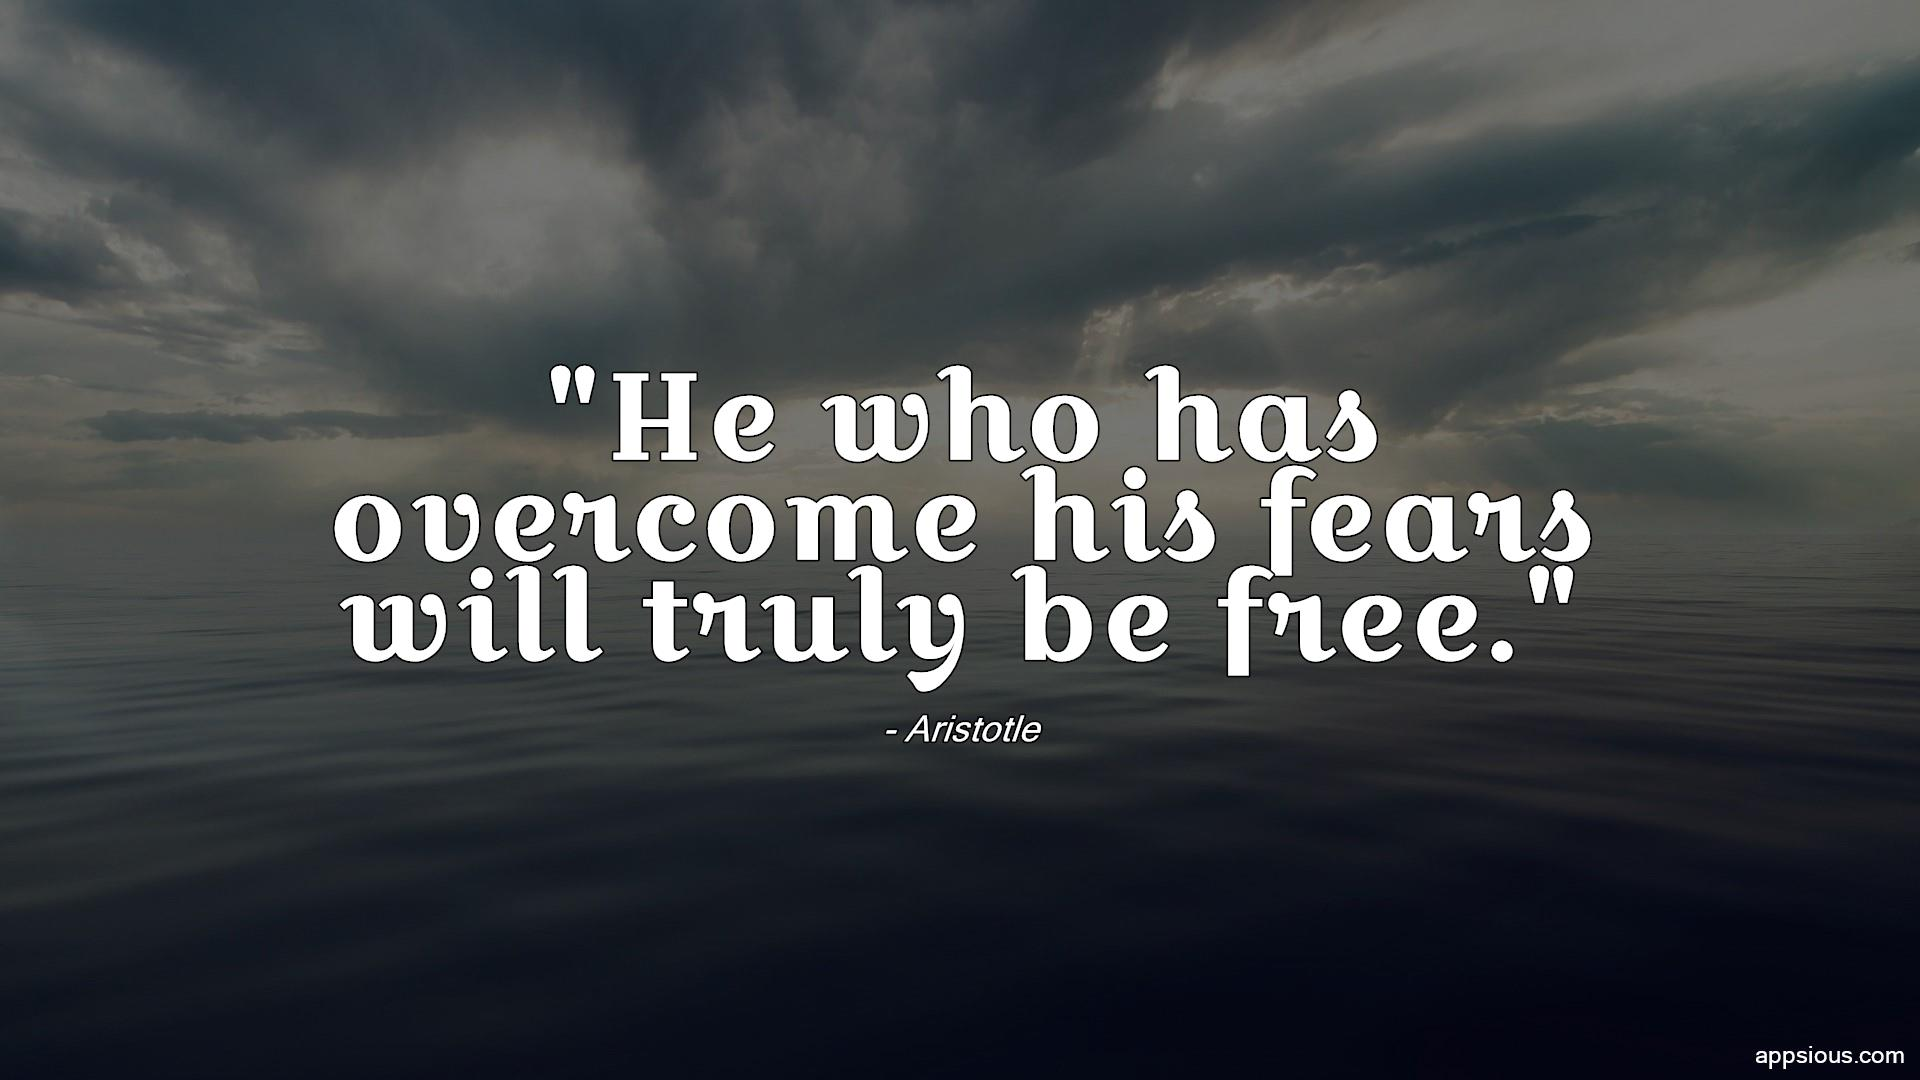 He who has overcome his fears will truly be free.